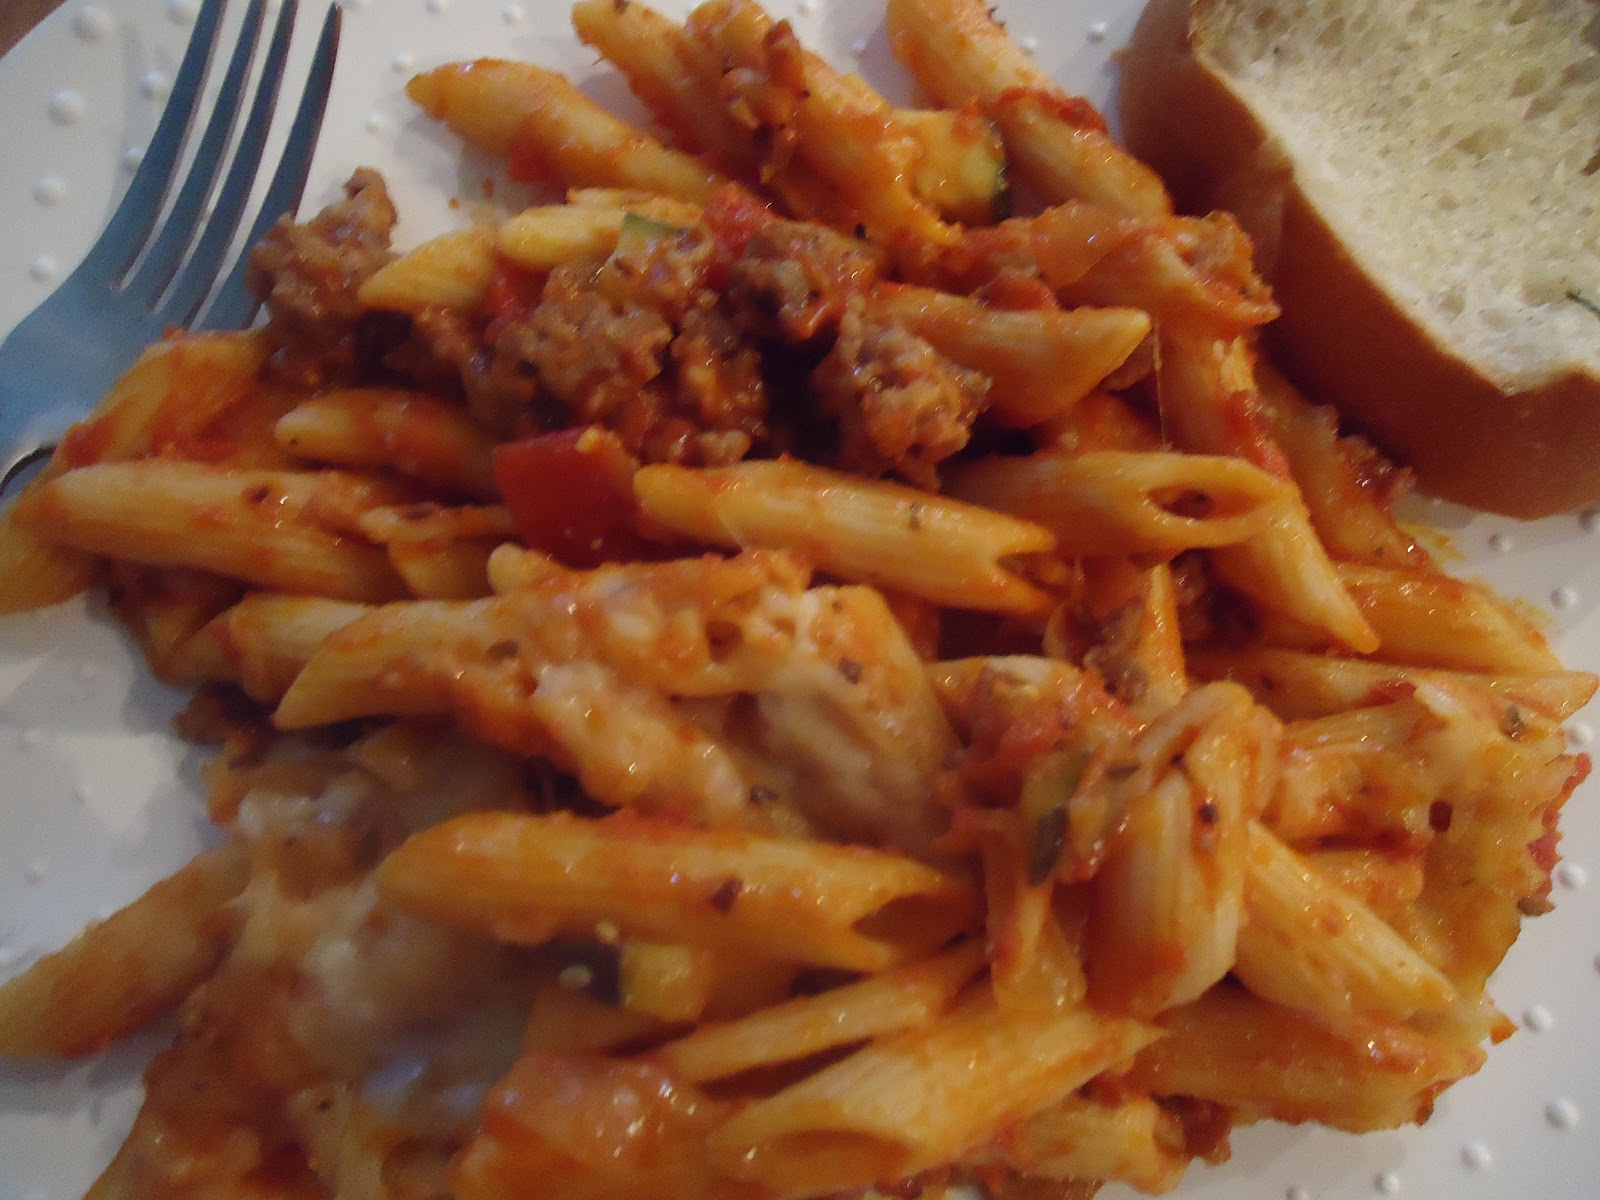 Naturally Homemade: Italian Sausage Casserole - freezer meal